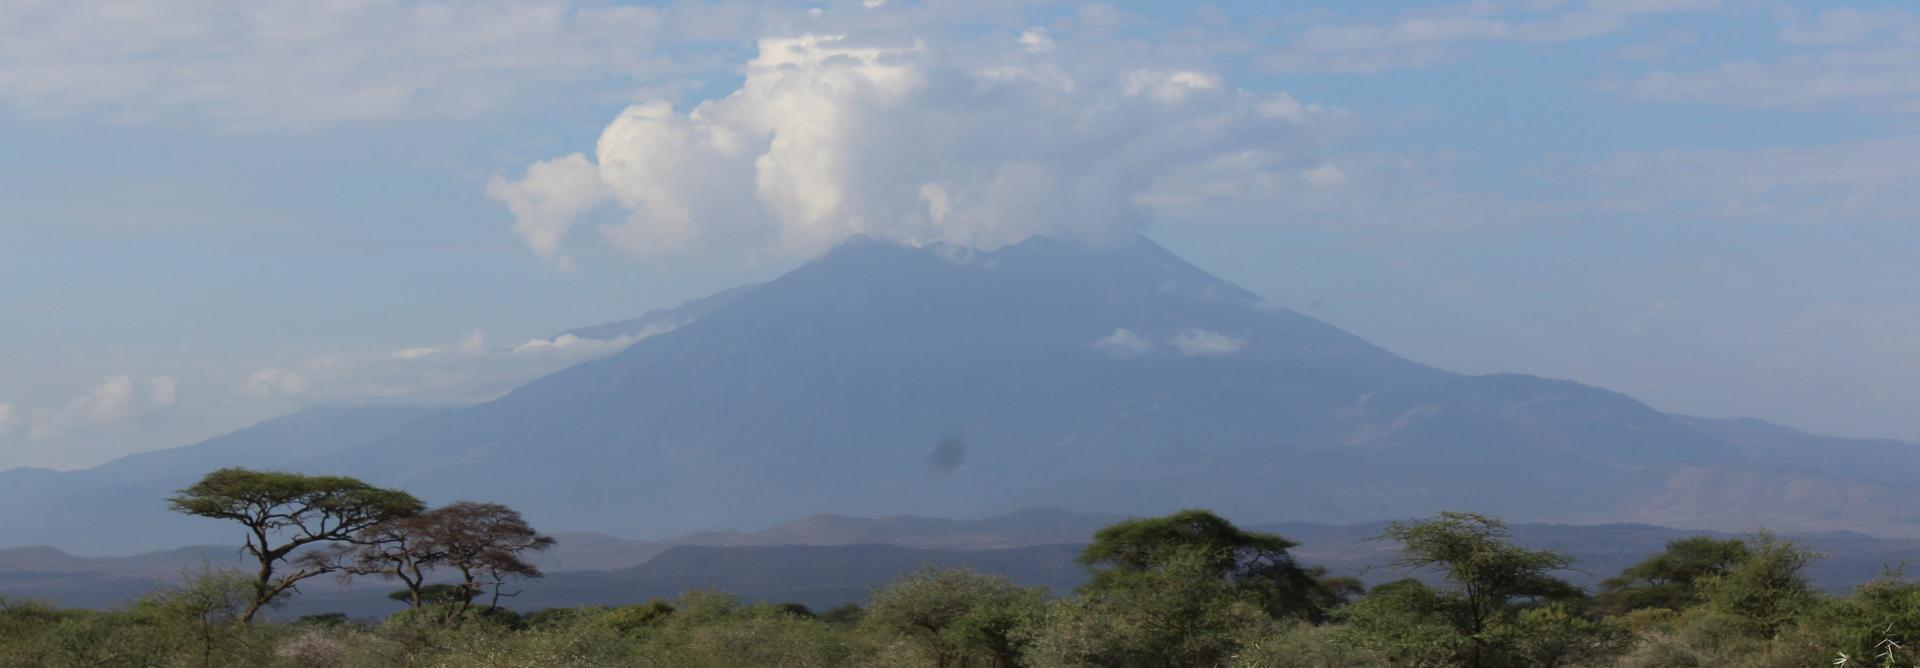 Kili bike - mountain